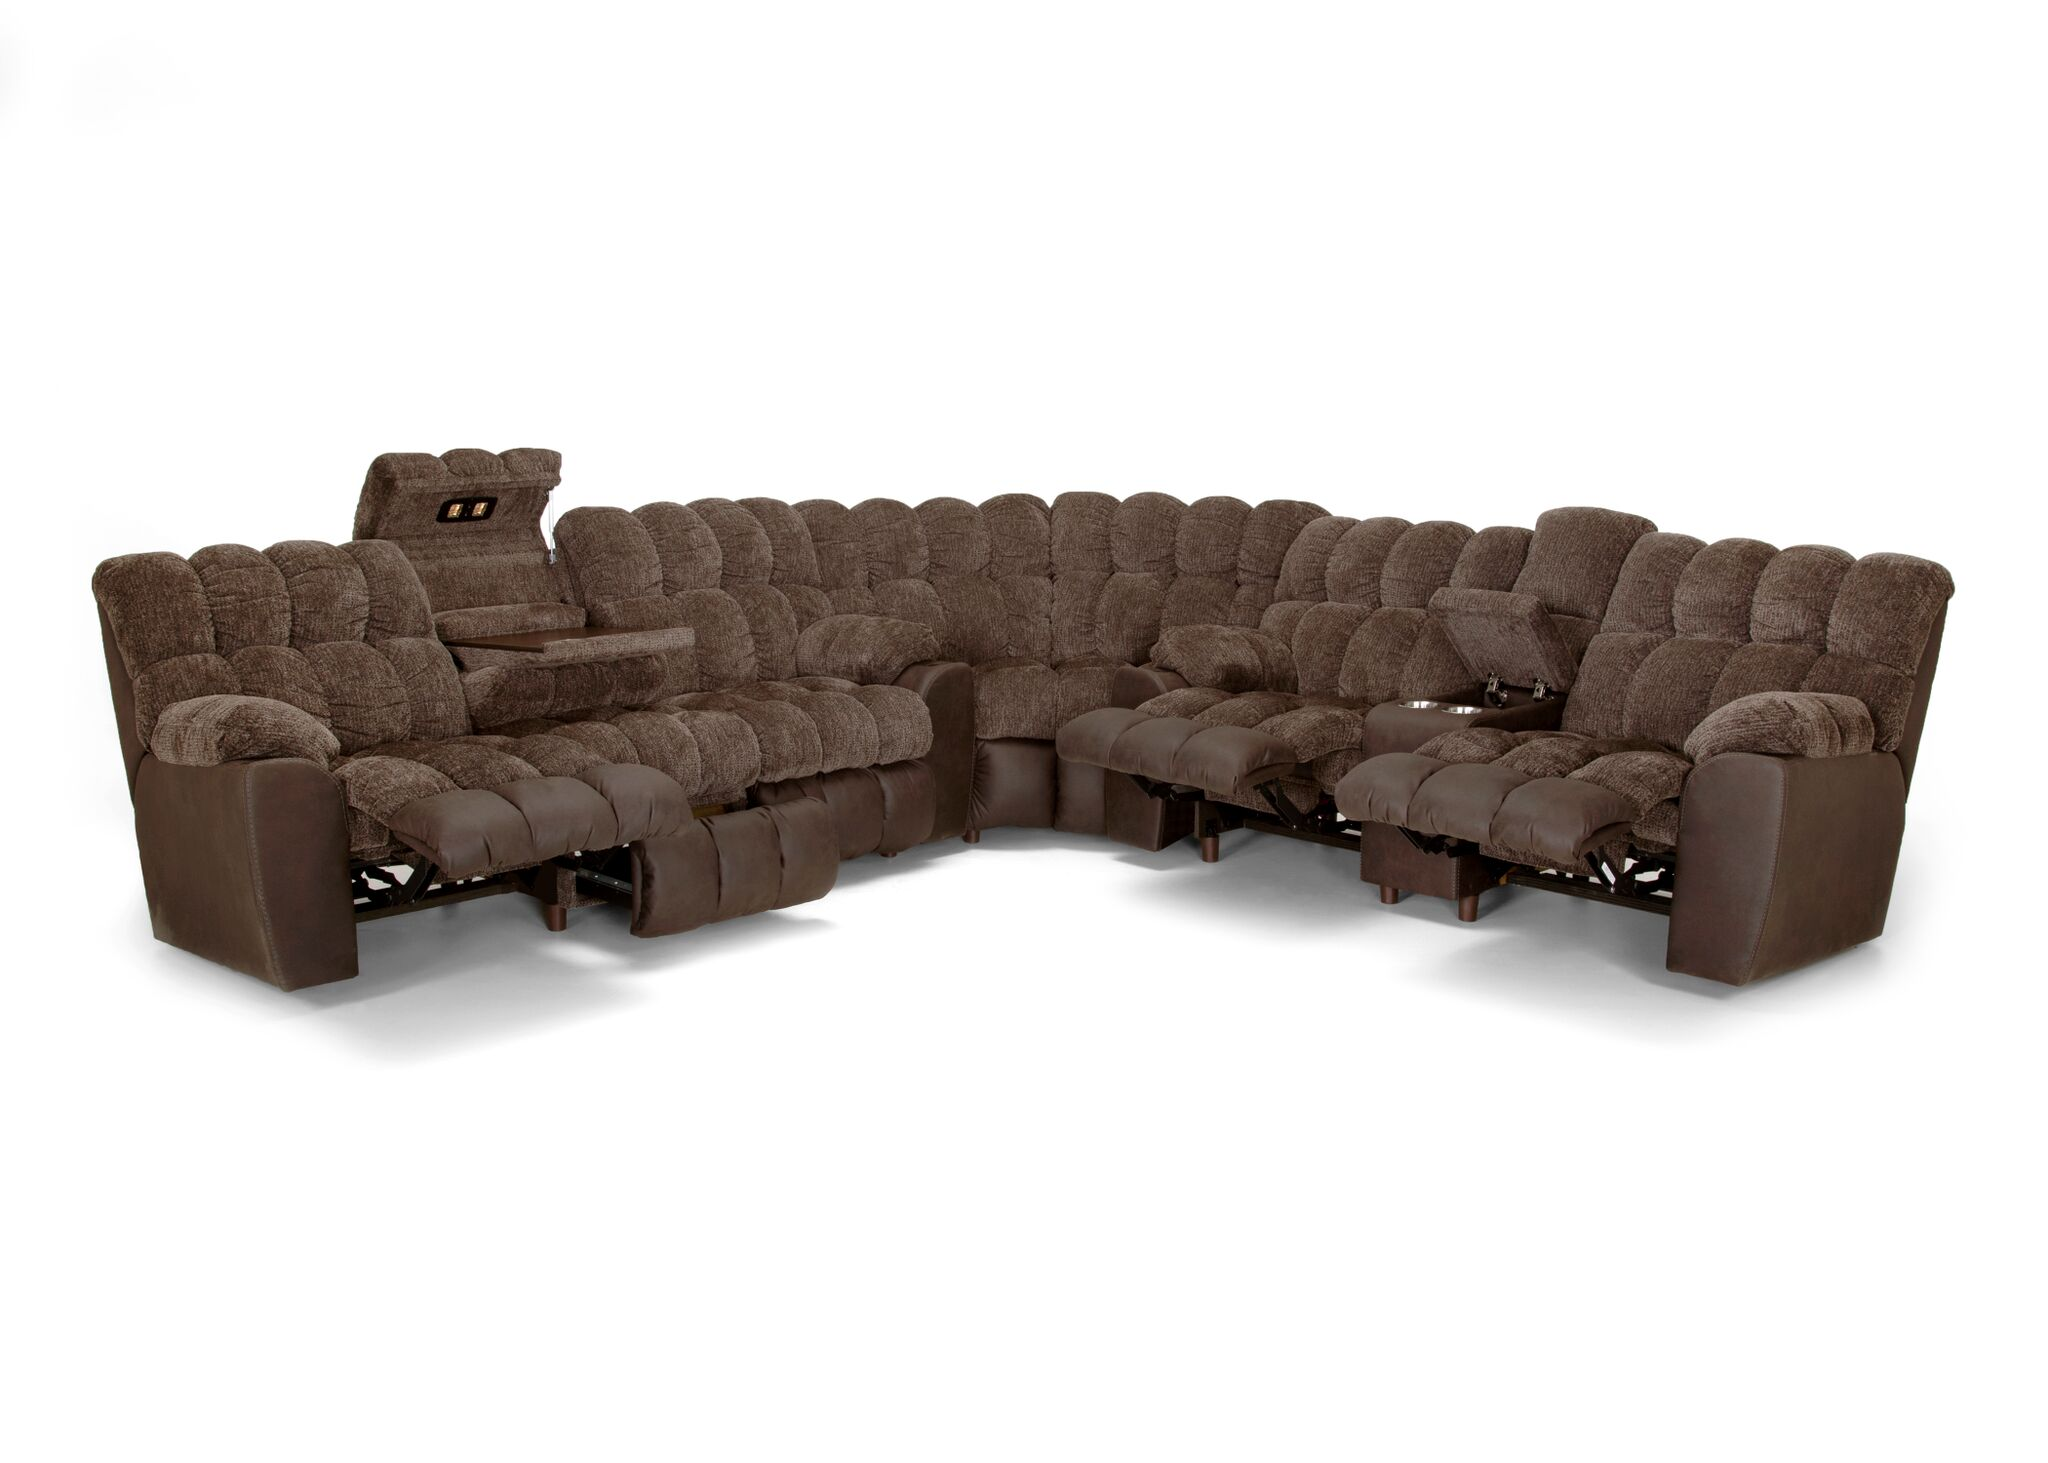 Westwood Chocolate Reclining Sofa And Loveseat With Storage Drop Down Table Lights And Integrated Usb Port